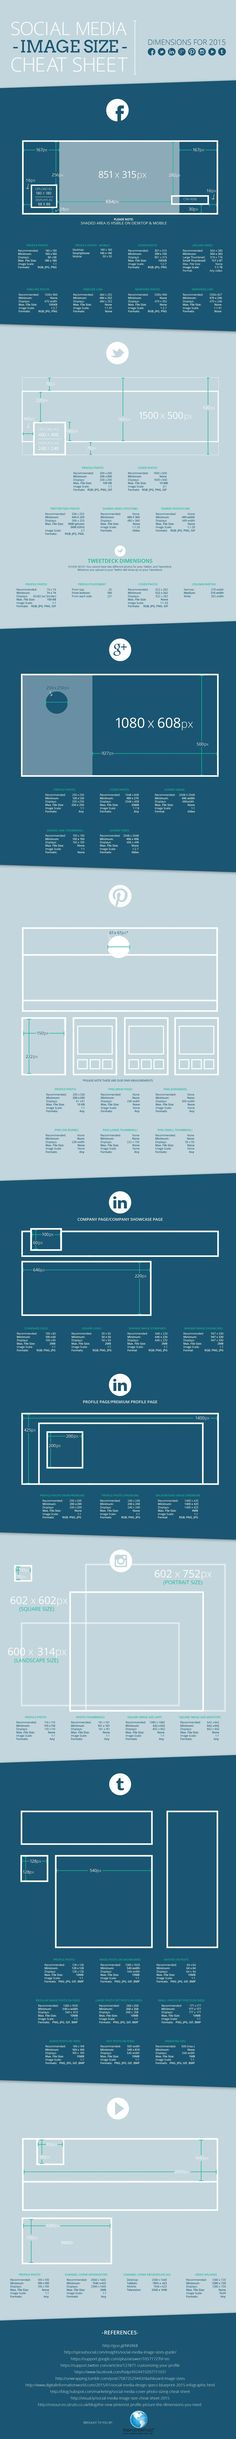 LOVE THAT IS SHOWS THE CROPPING FOR MOBILE AS WELL ------ We understand you're busy. That's why we decided to create this helpful infographic that has all of the 2015 social media image dimensions in one place!